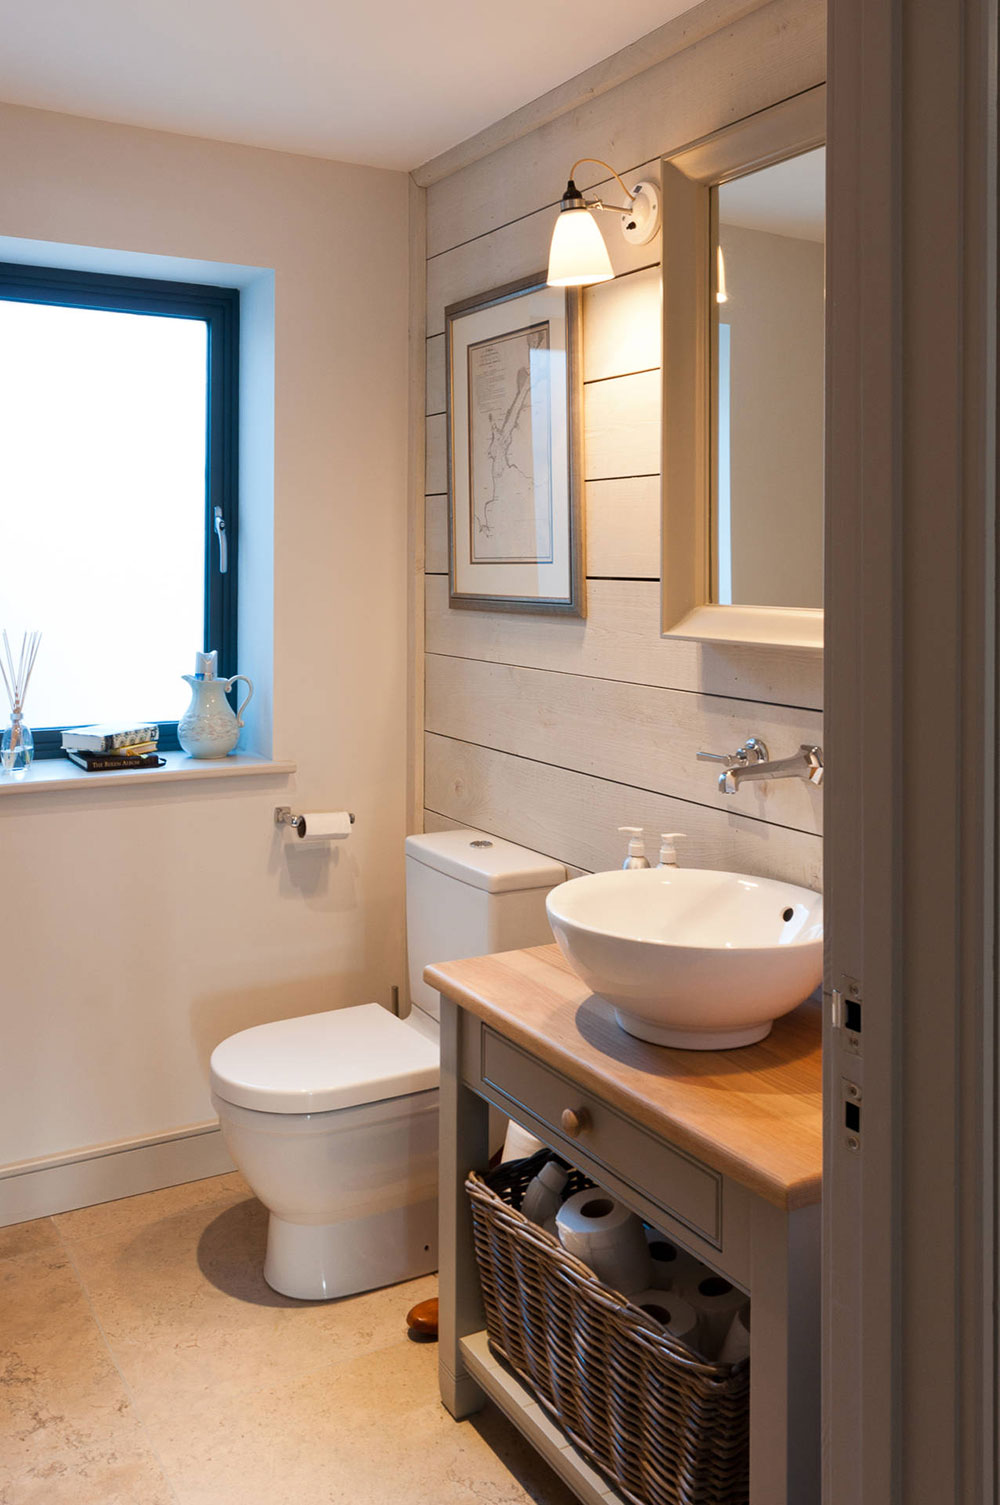 Gentil How To Make A Small Bathroom Look Bigger7 How